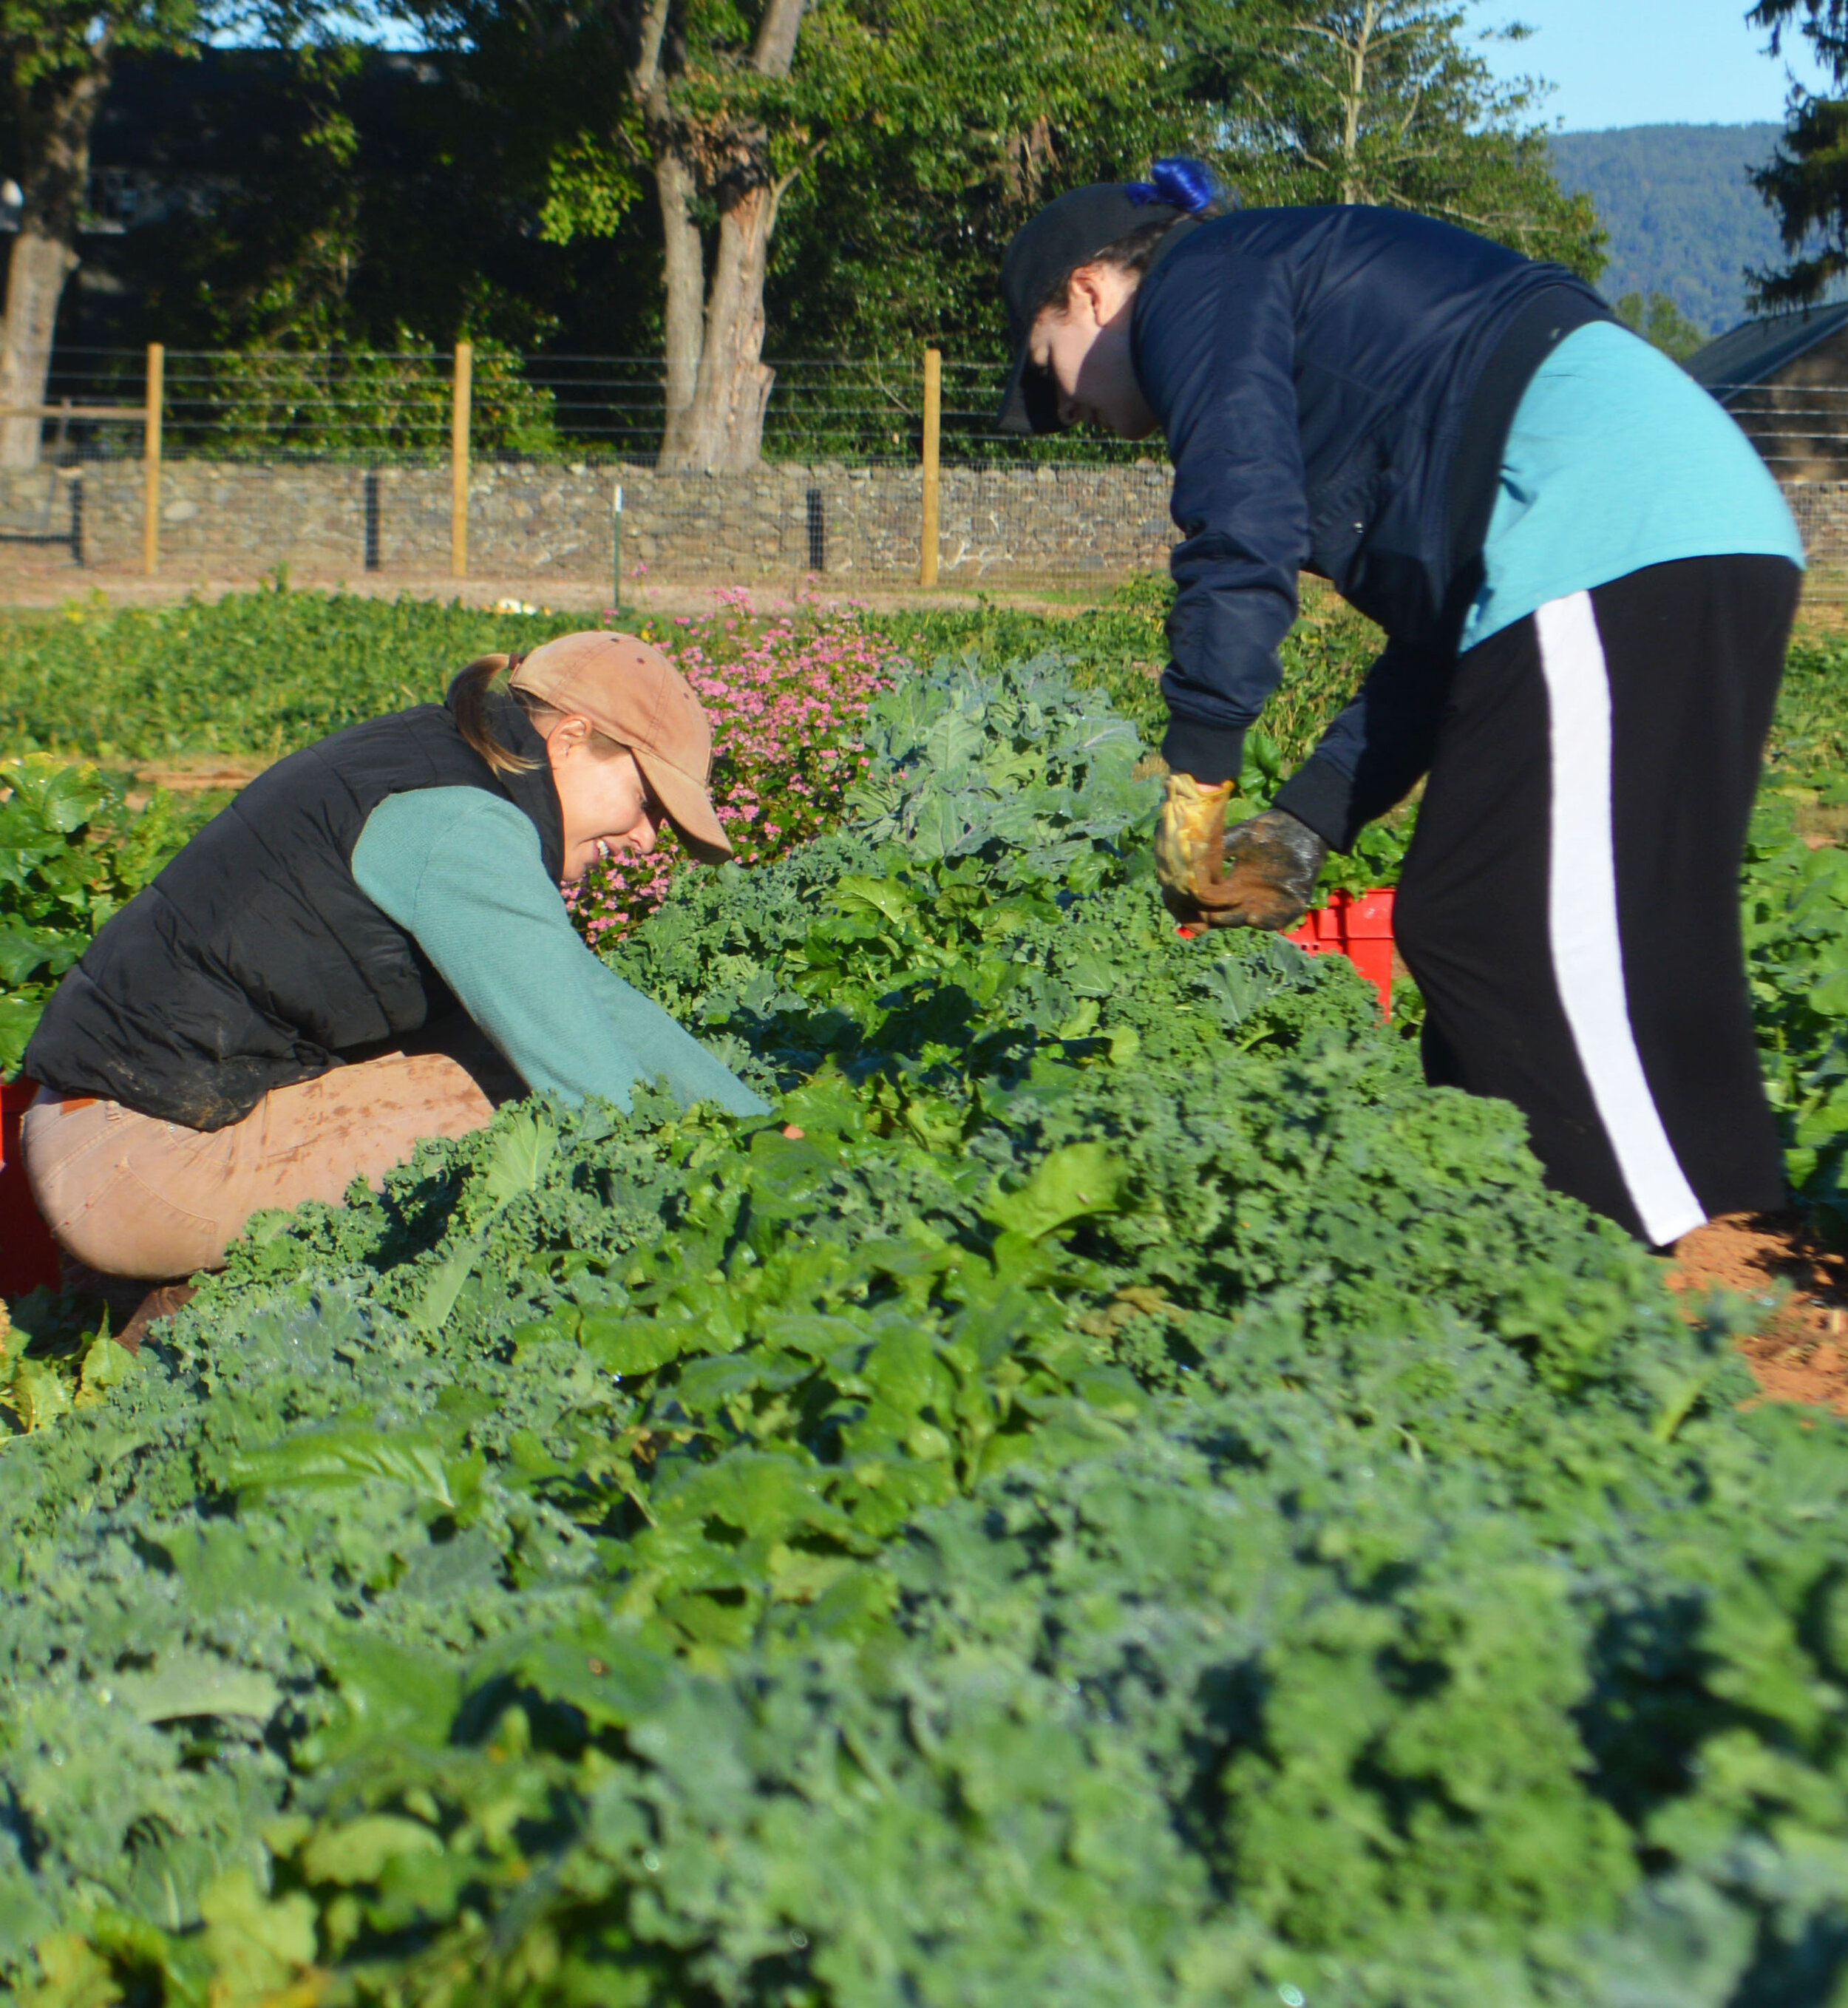 The BCCF harvesting greens this fall.